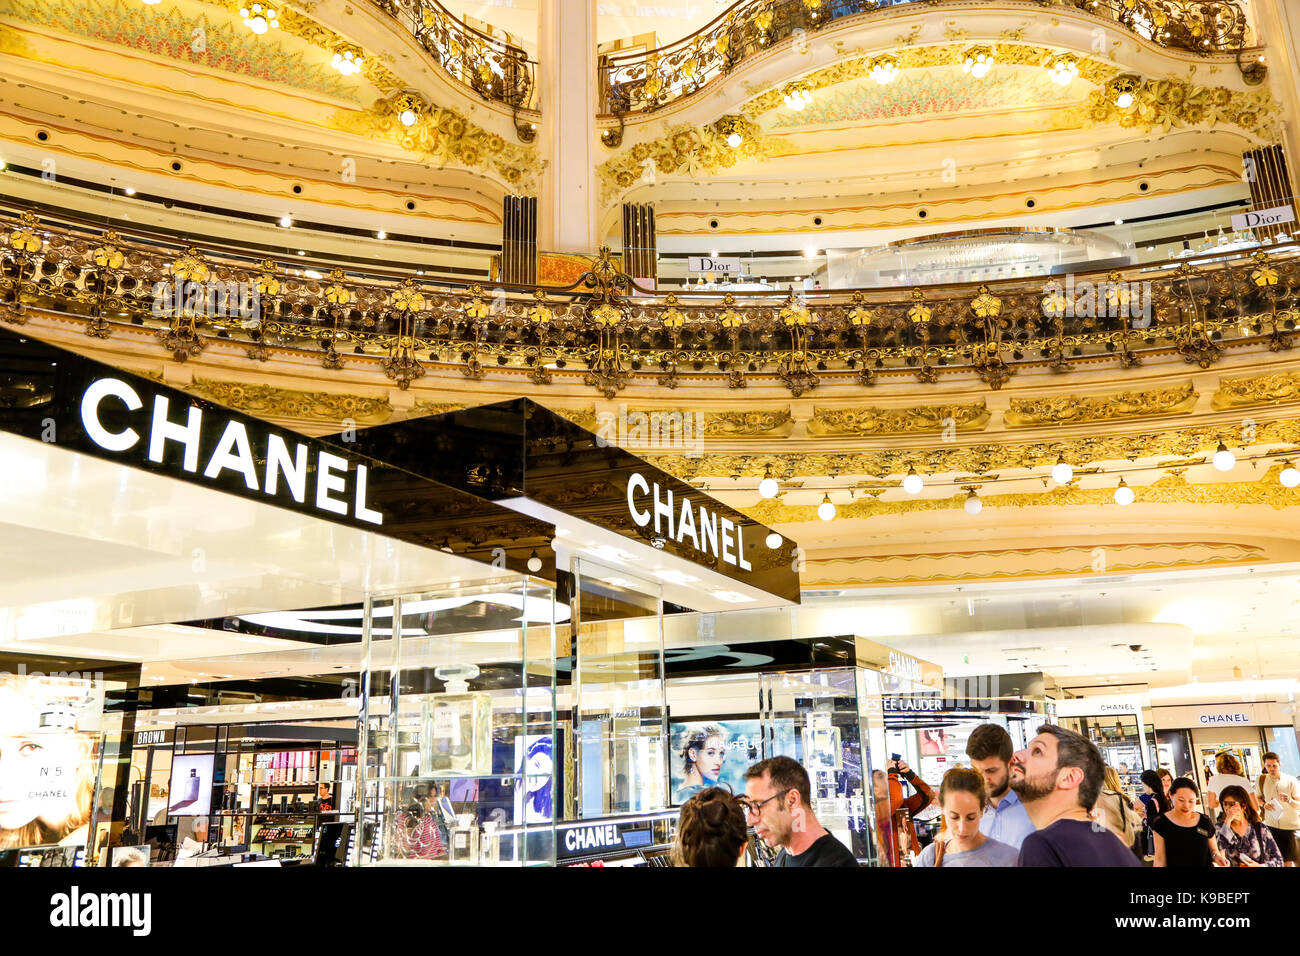 chanel store in paris france stock photos chanel store in paris france stock images alamy. Black Bedroom Furniture Sets. Home Design Ideas